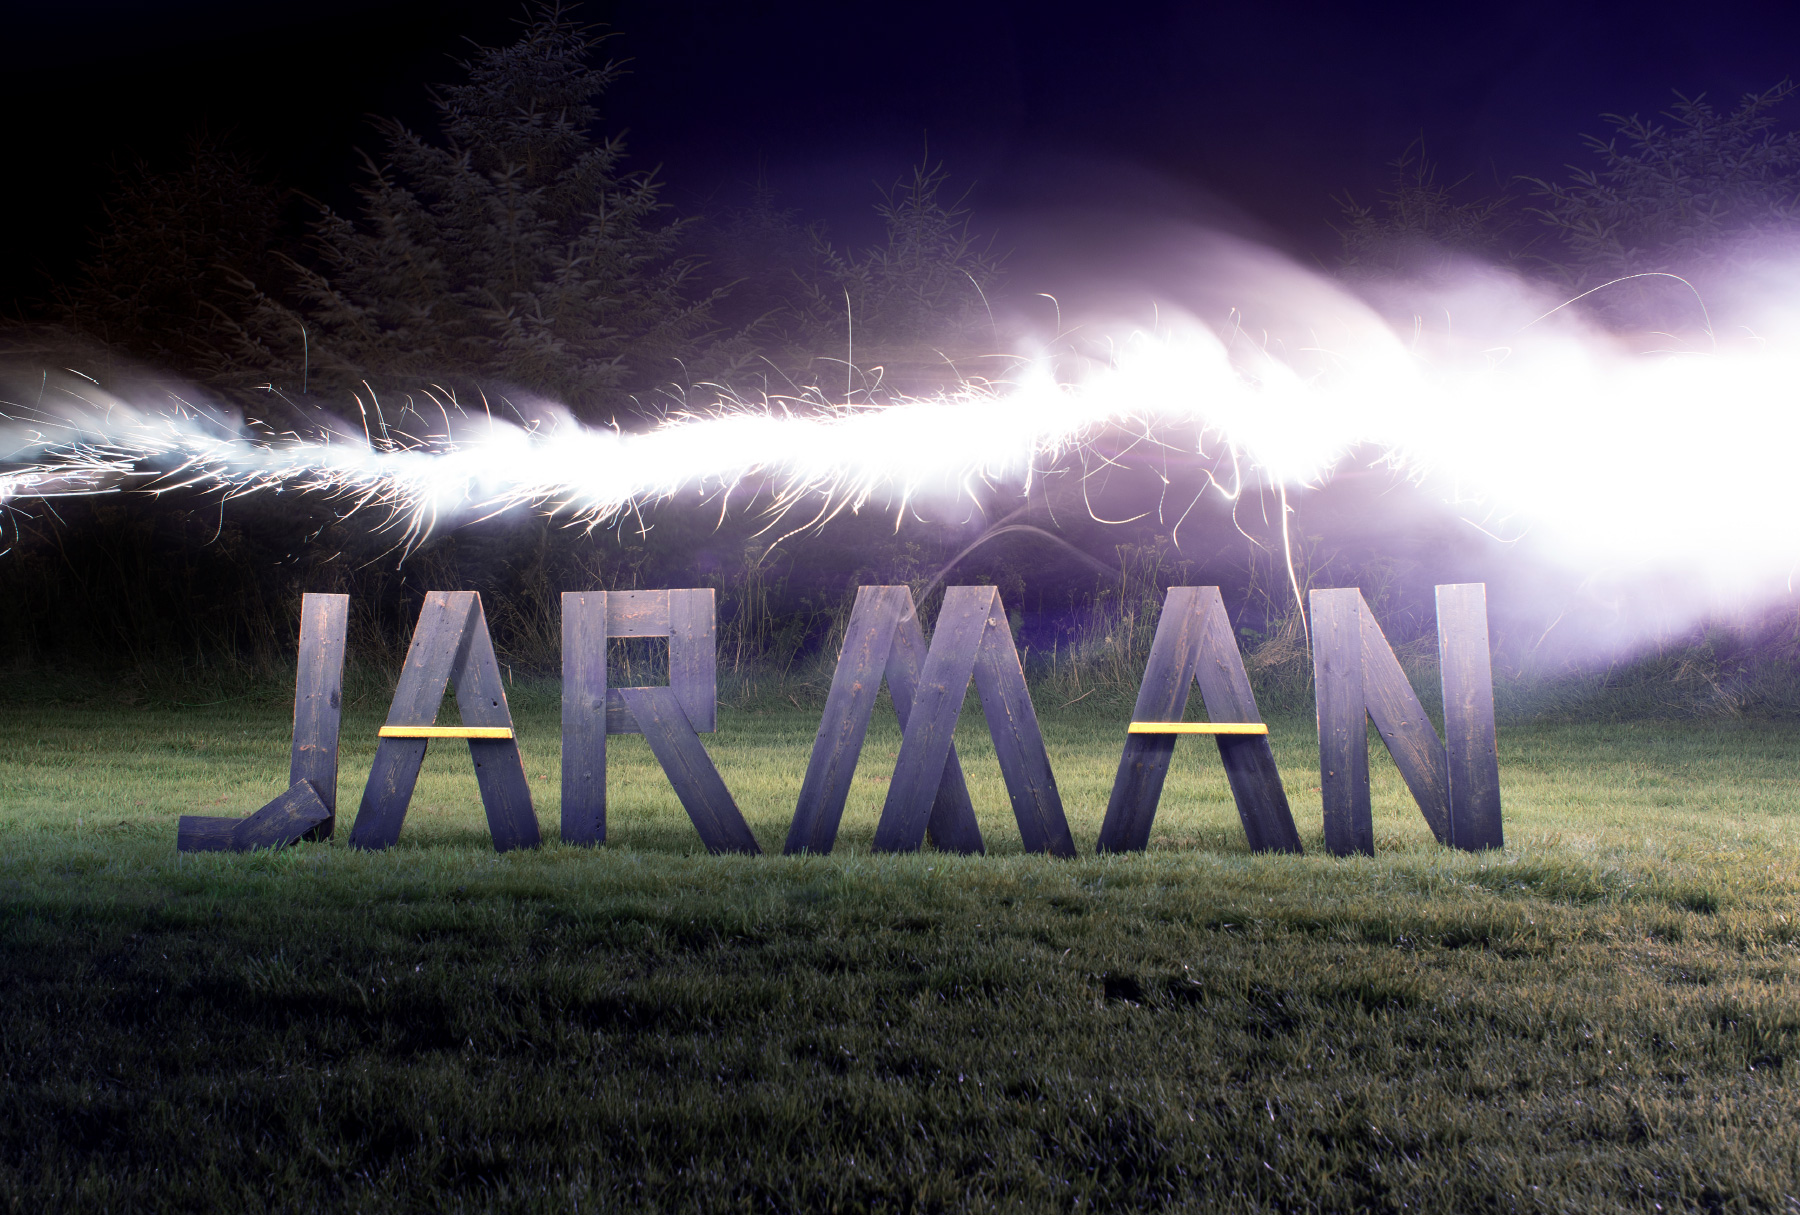 art-direction for JARMAN awards consisting of wooden letters in a dark field, illuminated by a flair